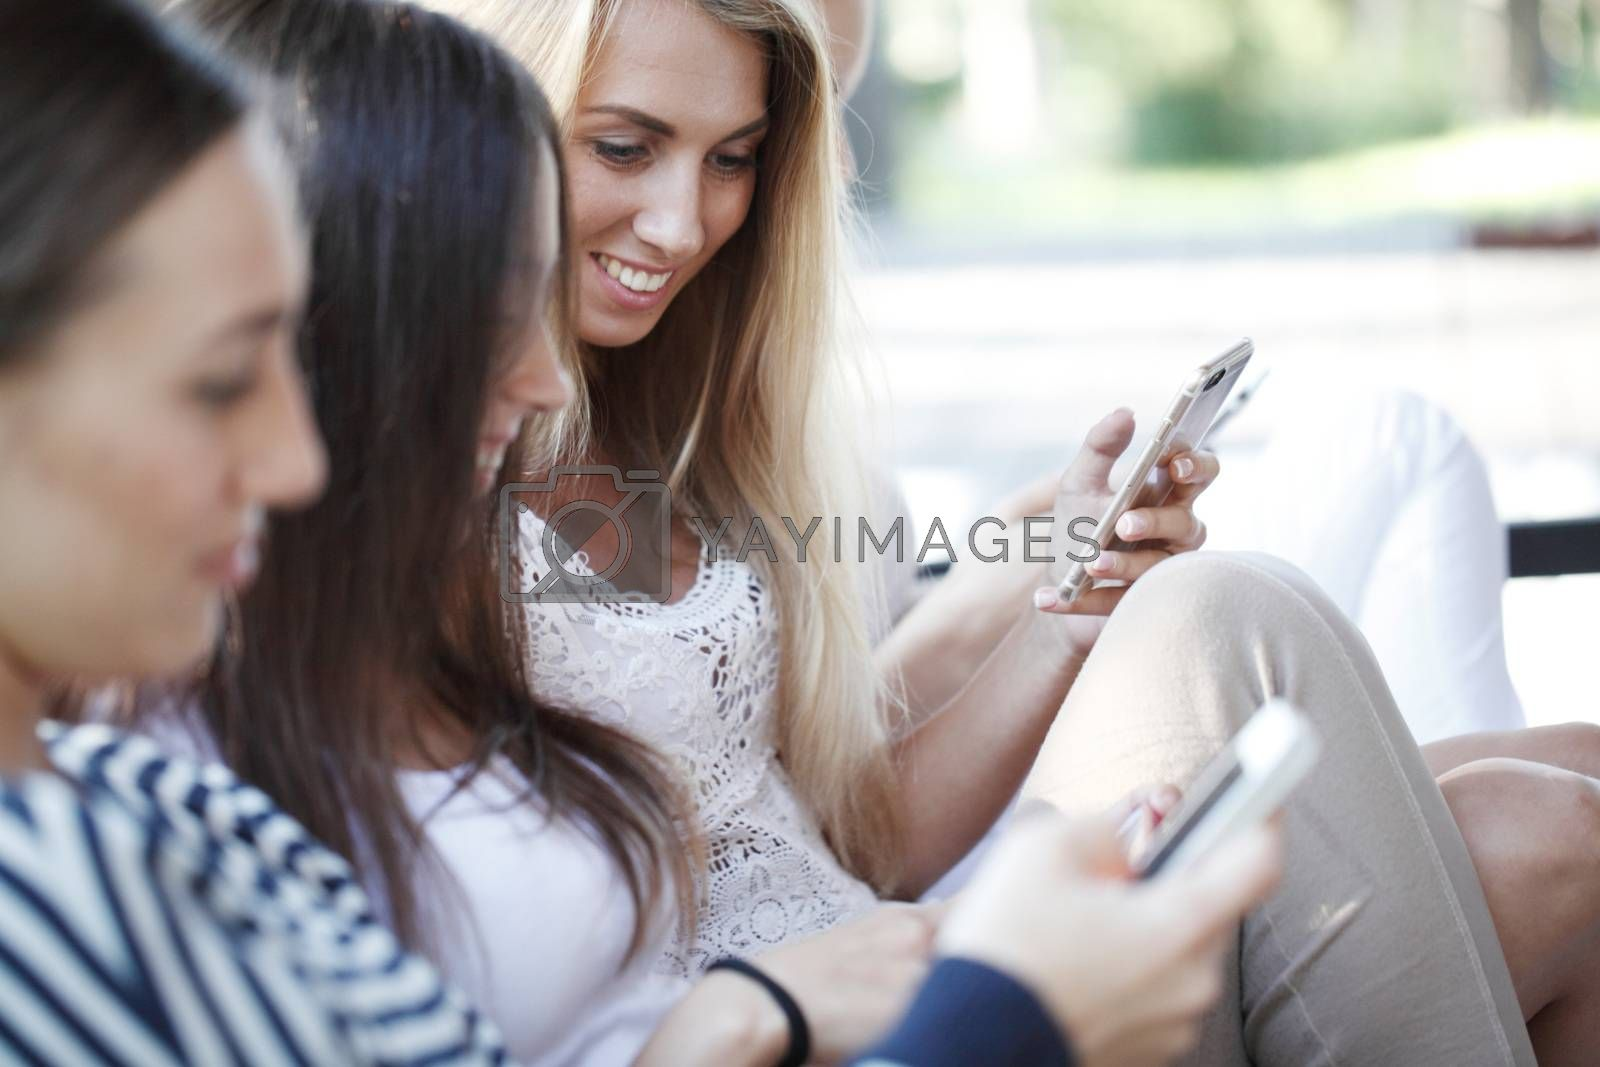 Girls chatting with their smartphones at the park